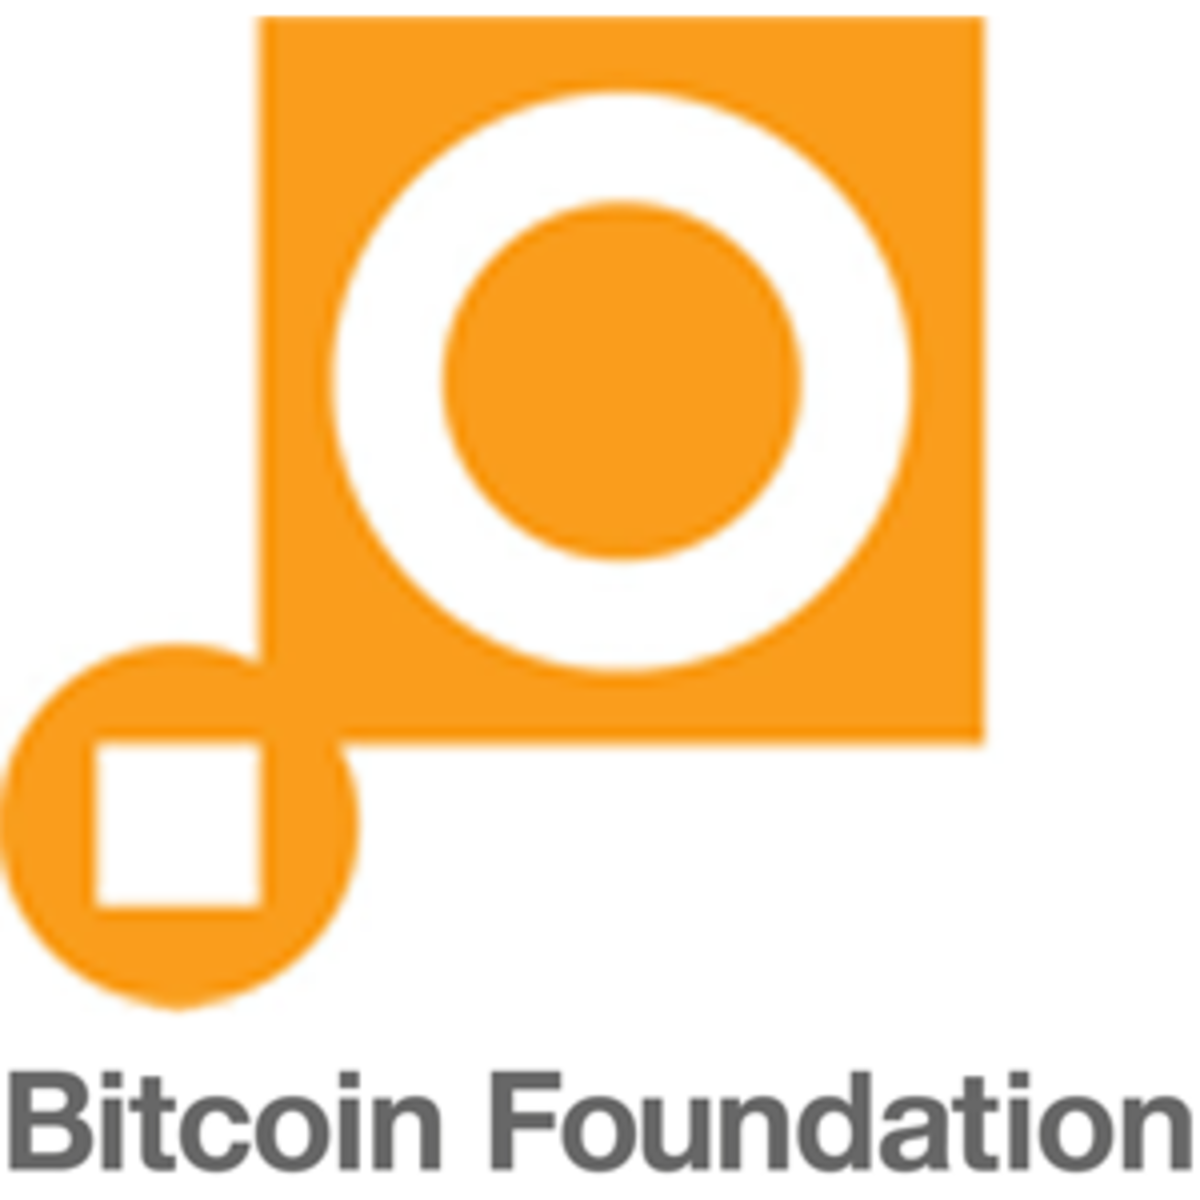 Op-ed - Bitcoin Foundation's Legal Defense Fund and Regulatory Outlook